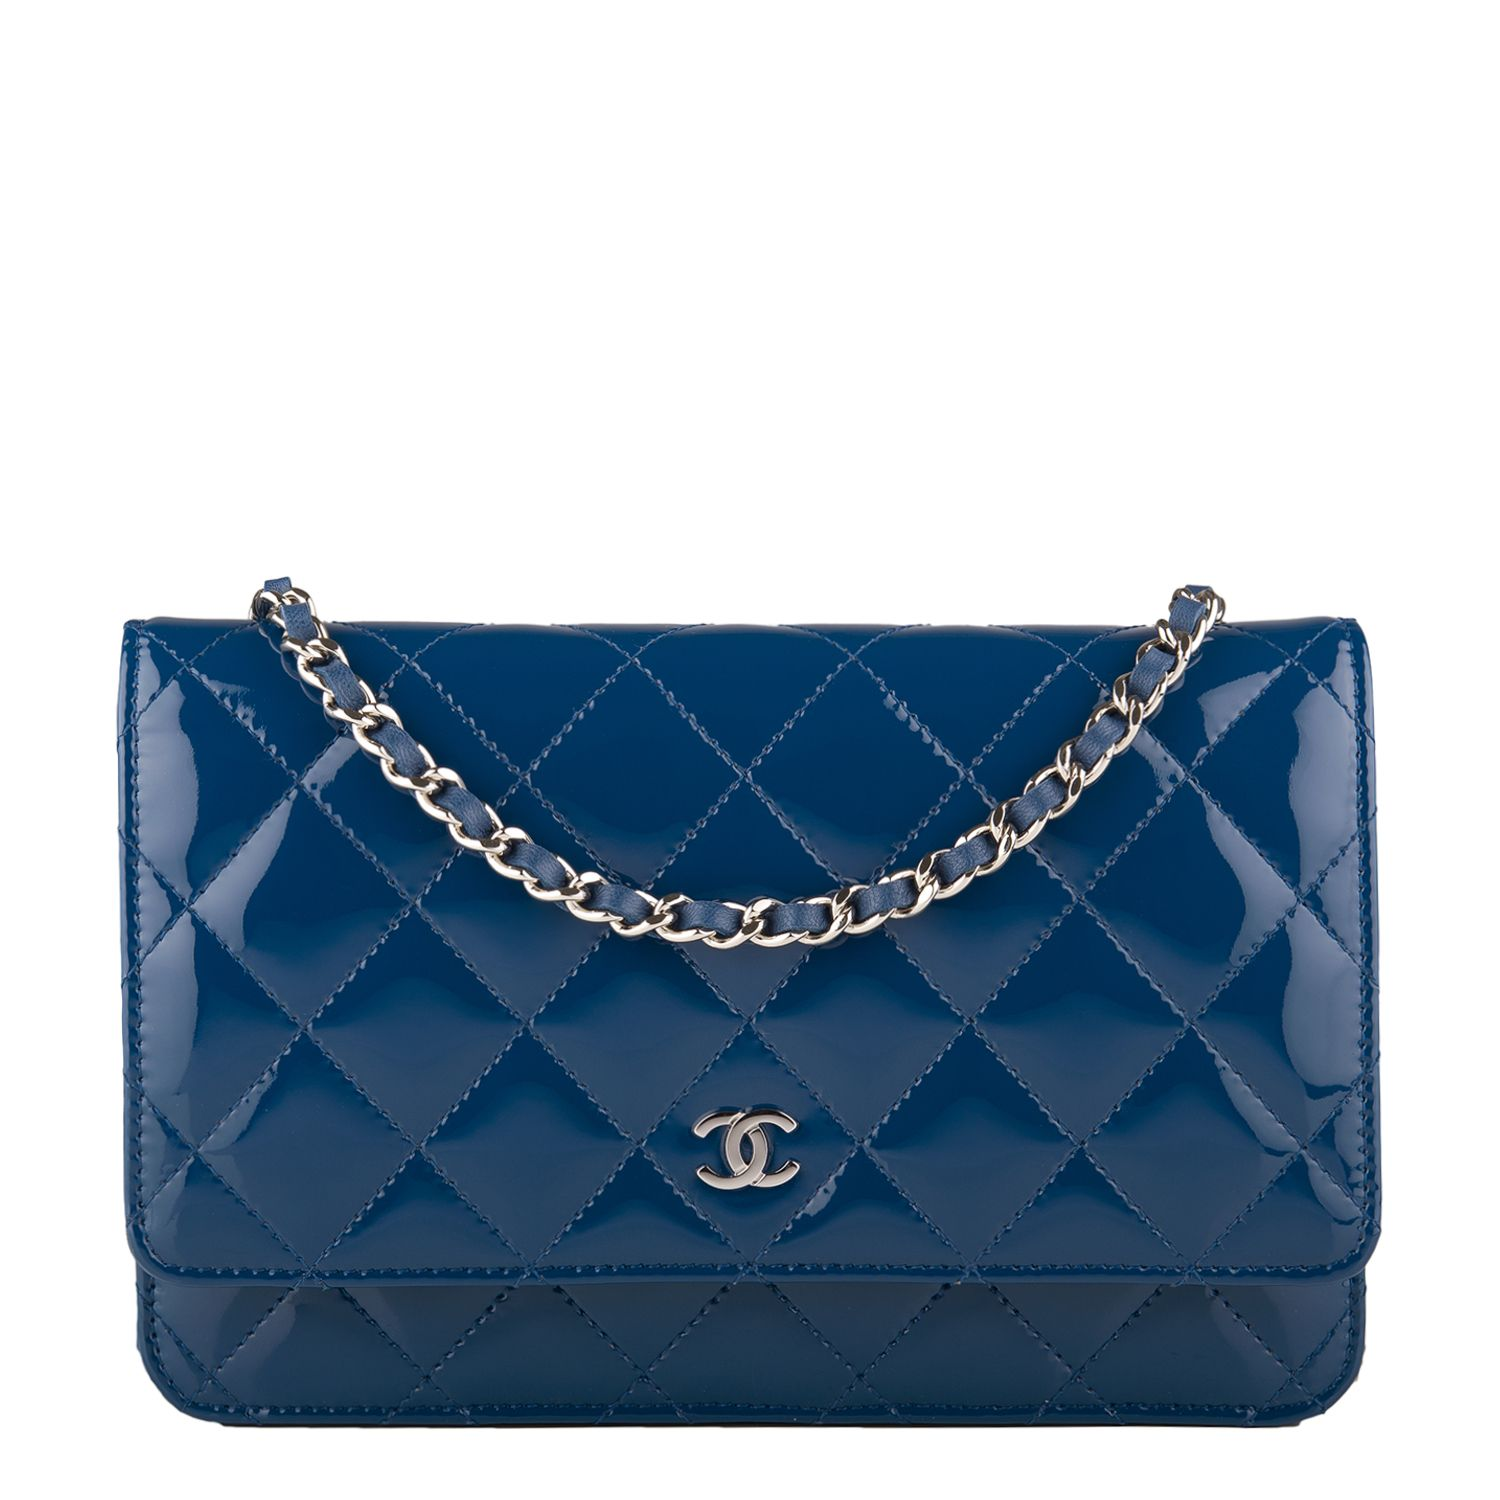 f297aa54fc41b8 #Chanel Dark Blue Quilted Patent Classic #Wallet On Chain (WOC) #Clutch #Bag